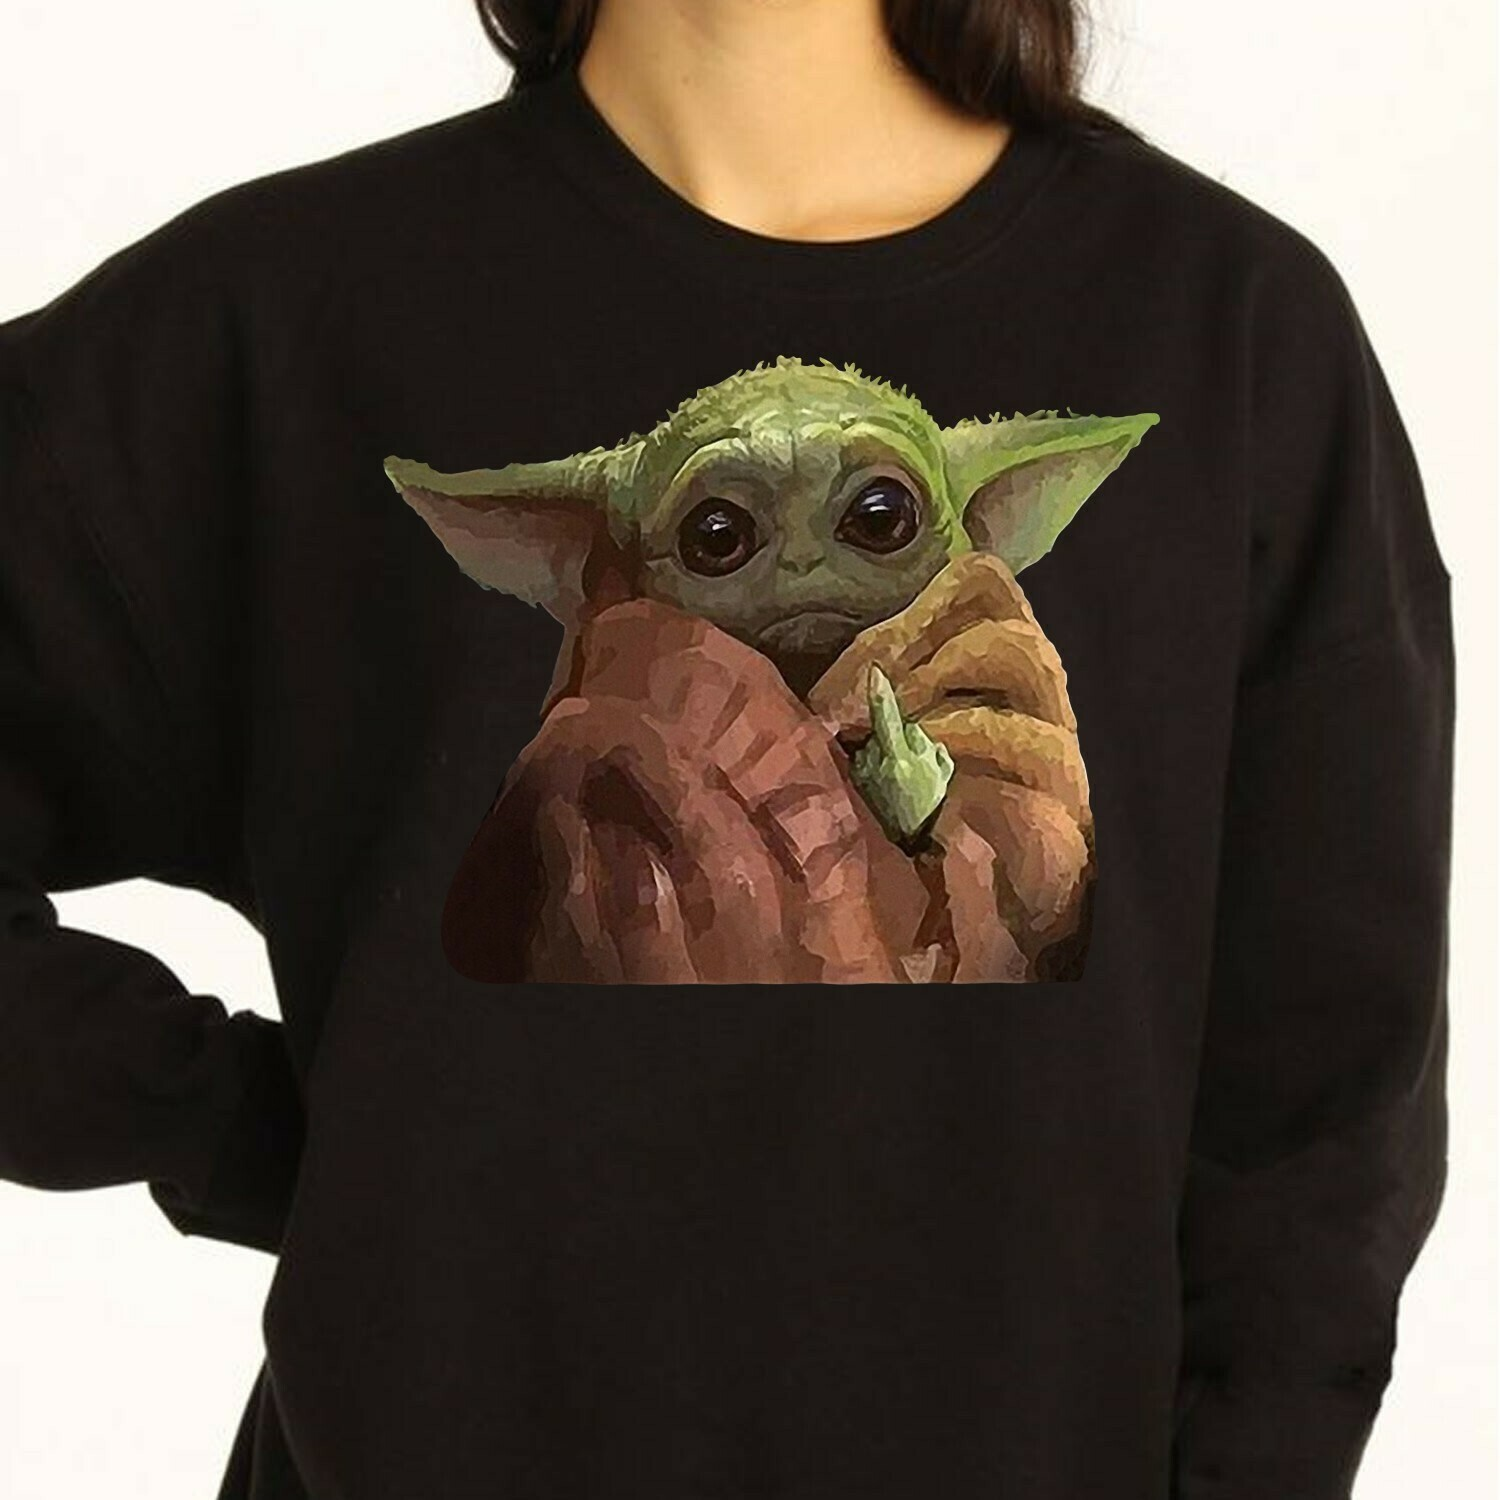 Baby Yoda Middle Finger Funny Movie Memes Star Wars The Mandalorian The Rise of Skywalker funny fan gift T shirt Long Sleeve Sweatshirt Hoodie Jolly Family Gifts